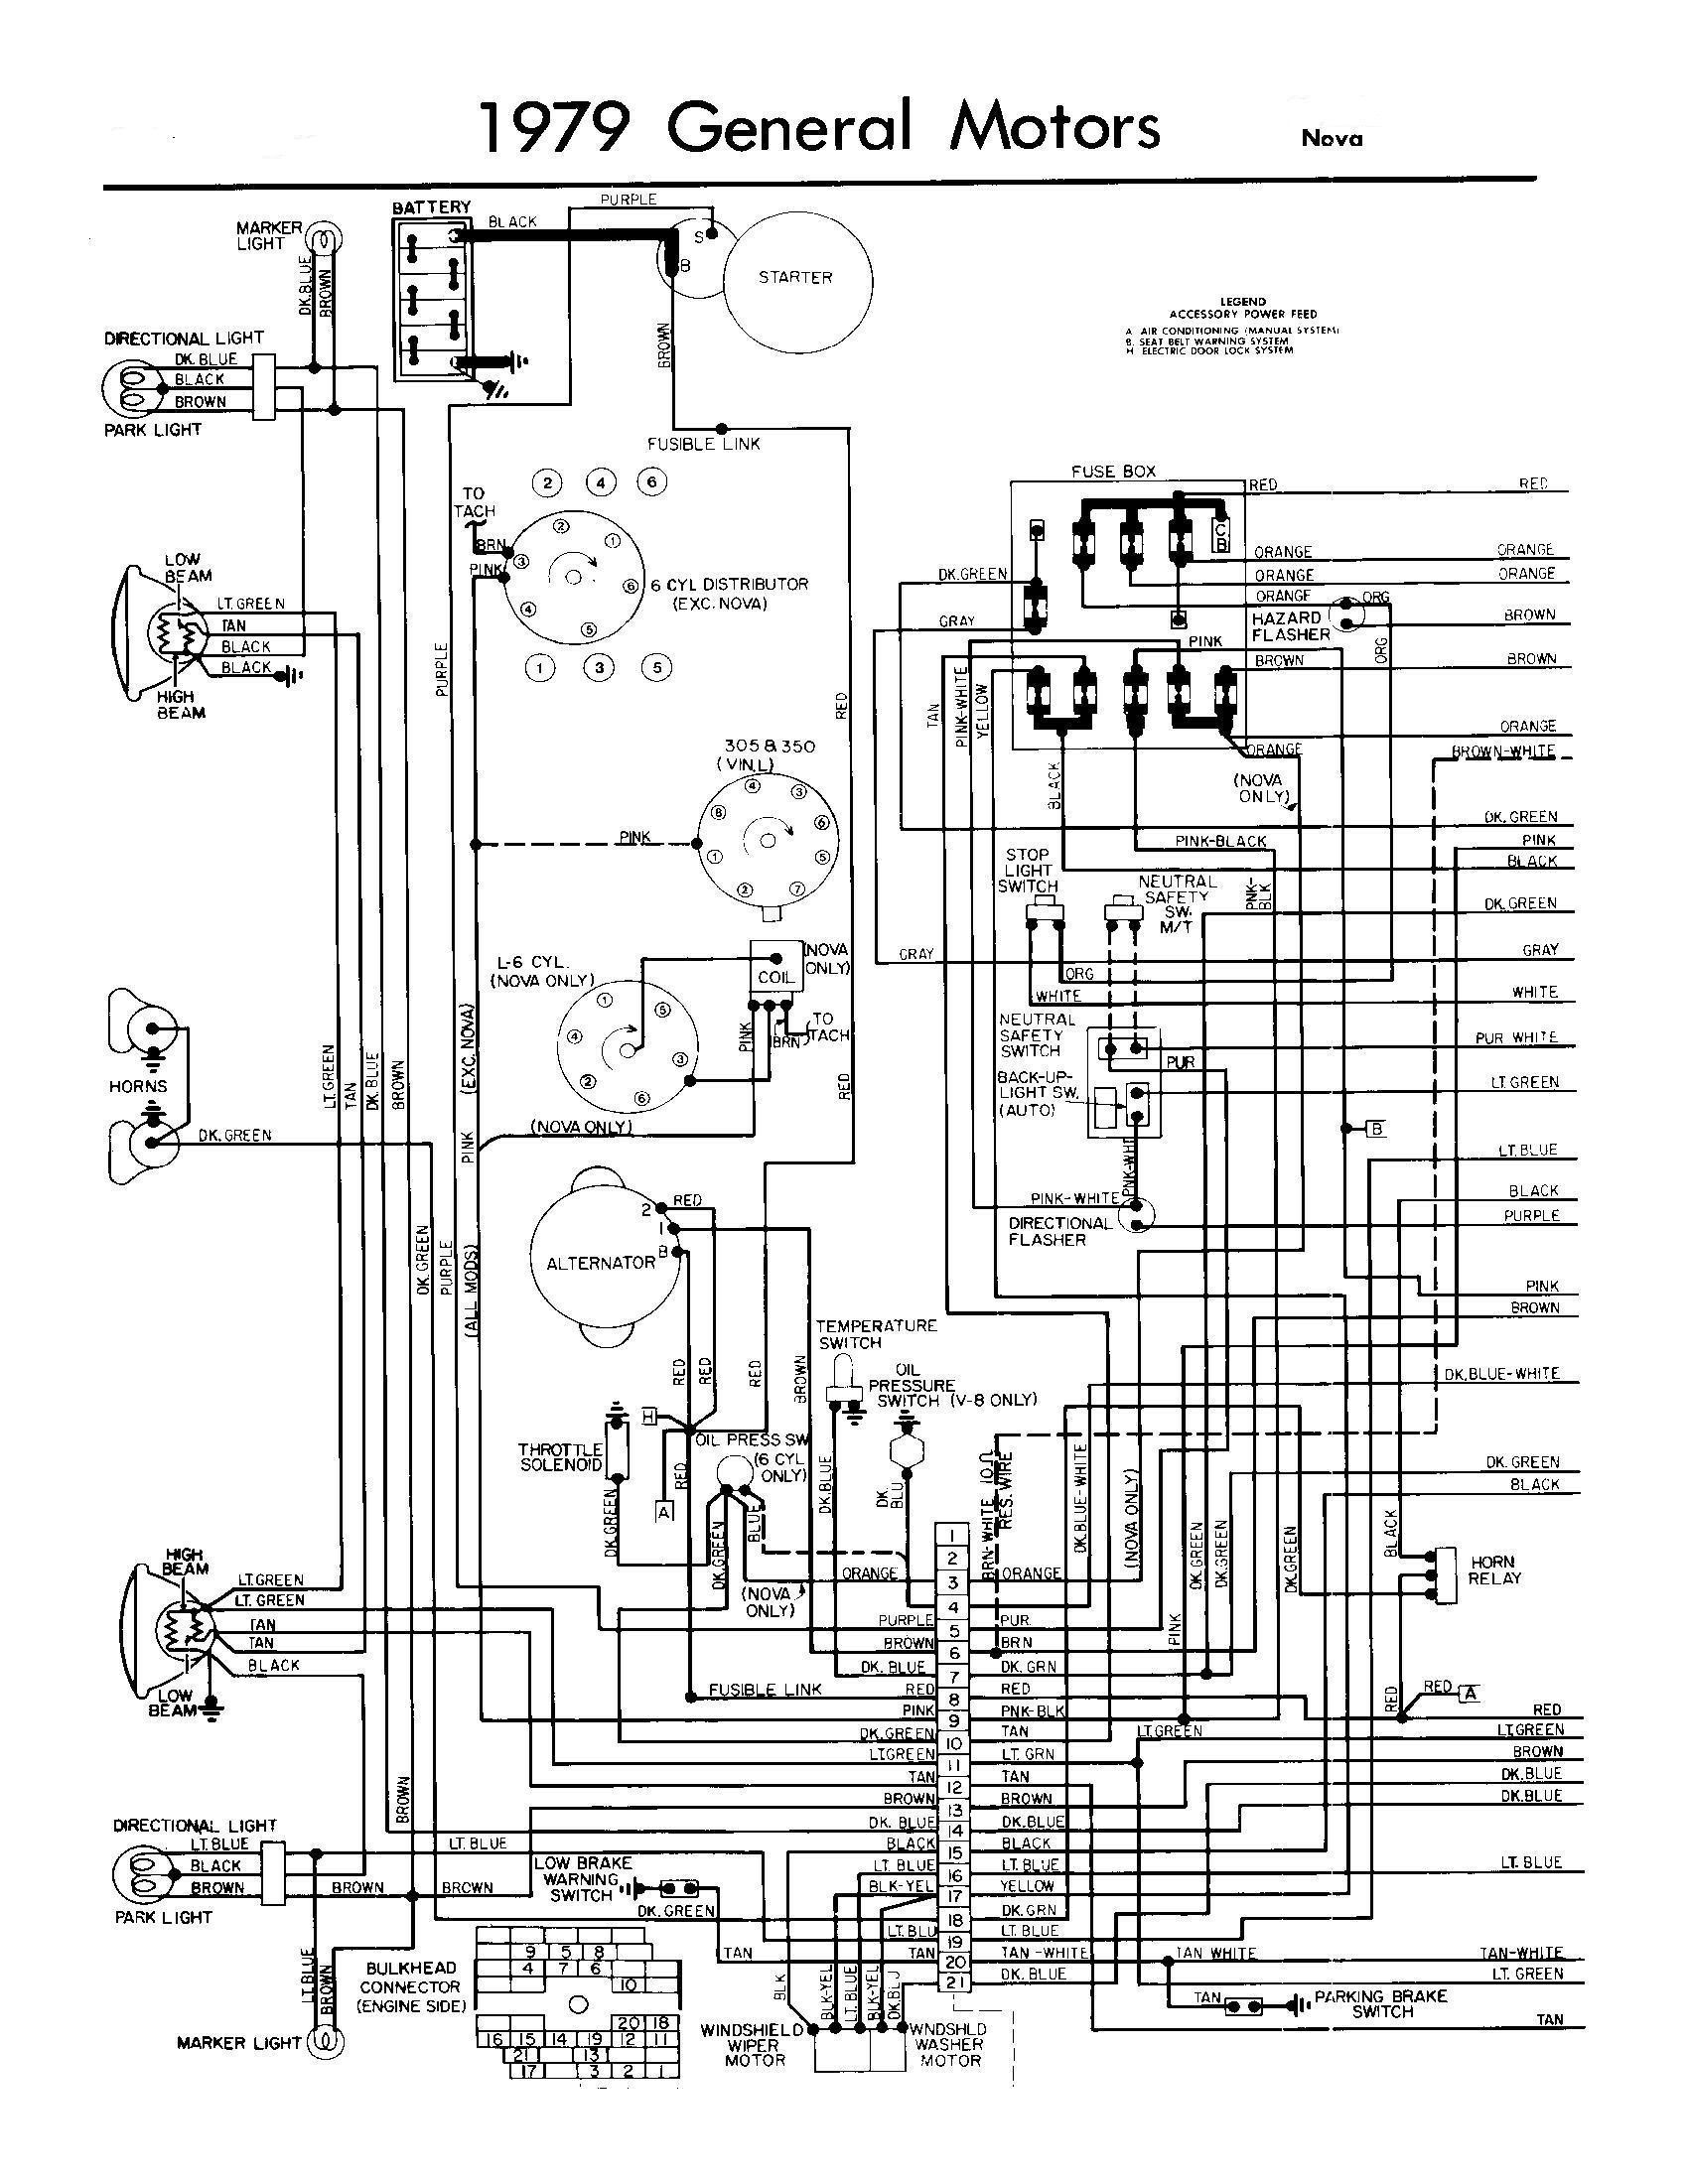 1935 Buick Wiring Diagram Trusted Ignition Coil Chrysler Circuit Diy Enthusiasts Lesabre Schematic